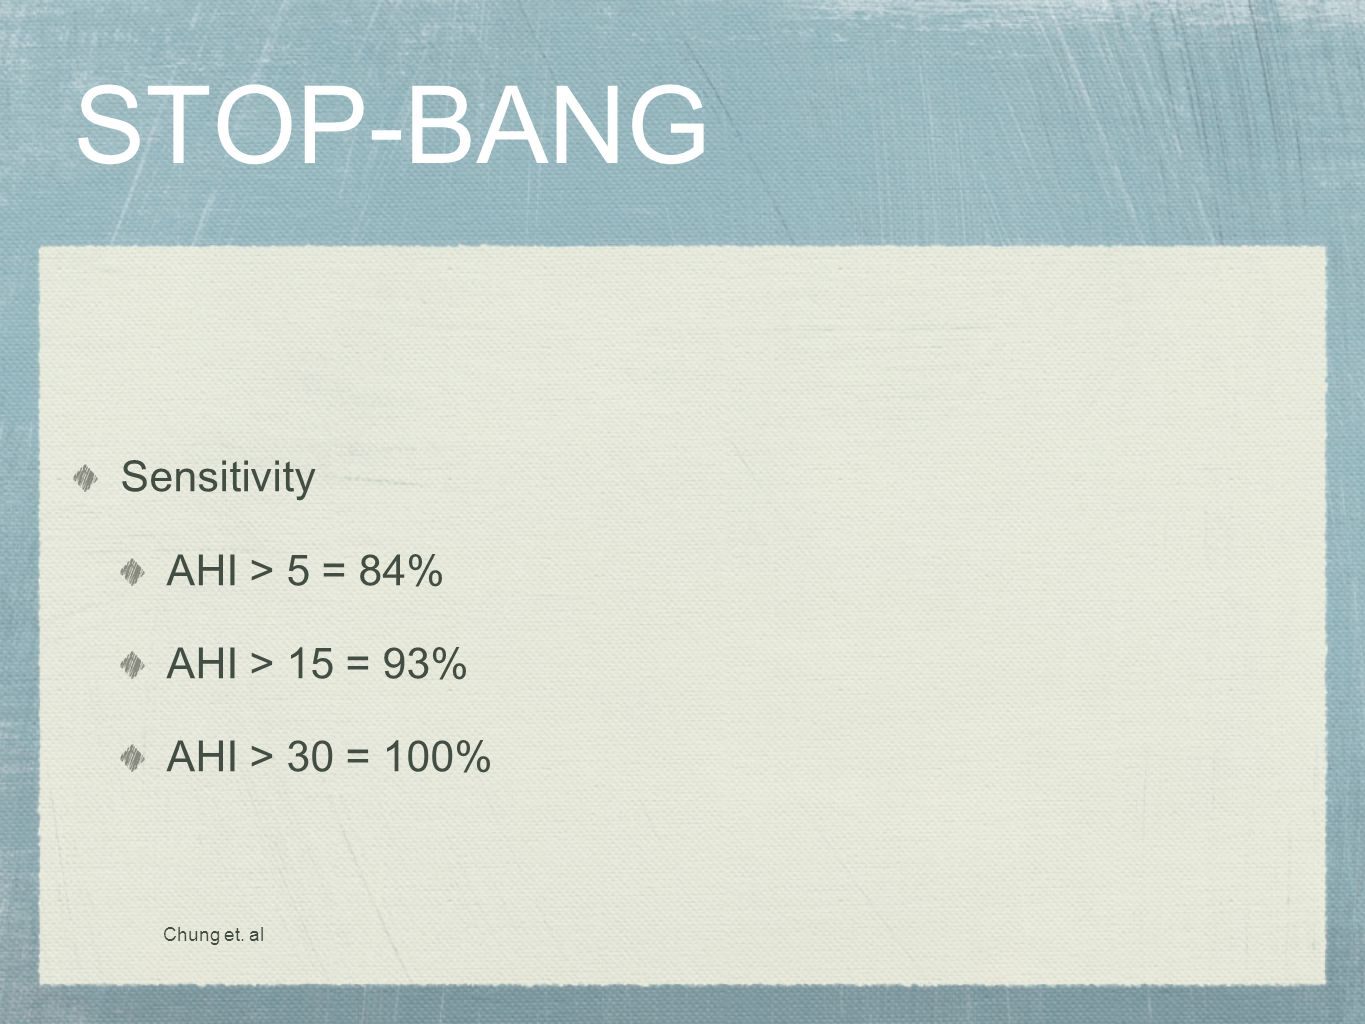 STOP-BANG Sensitivity AHI > 5 = 84% AHI > 15 = 93%